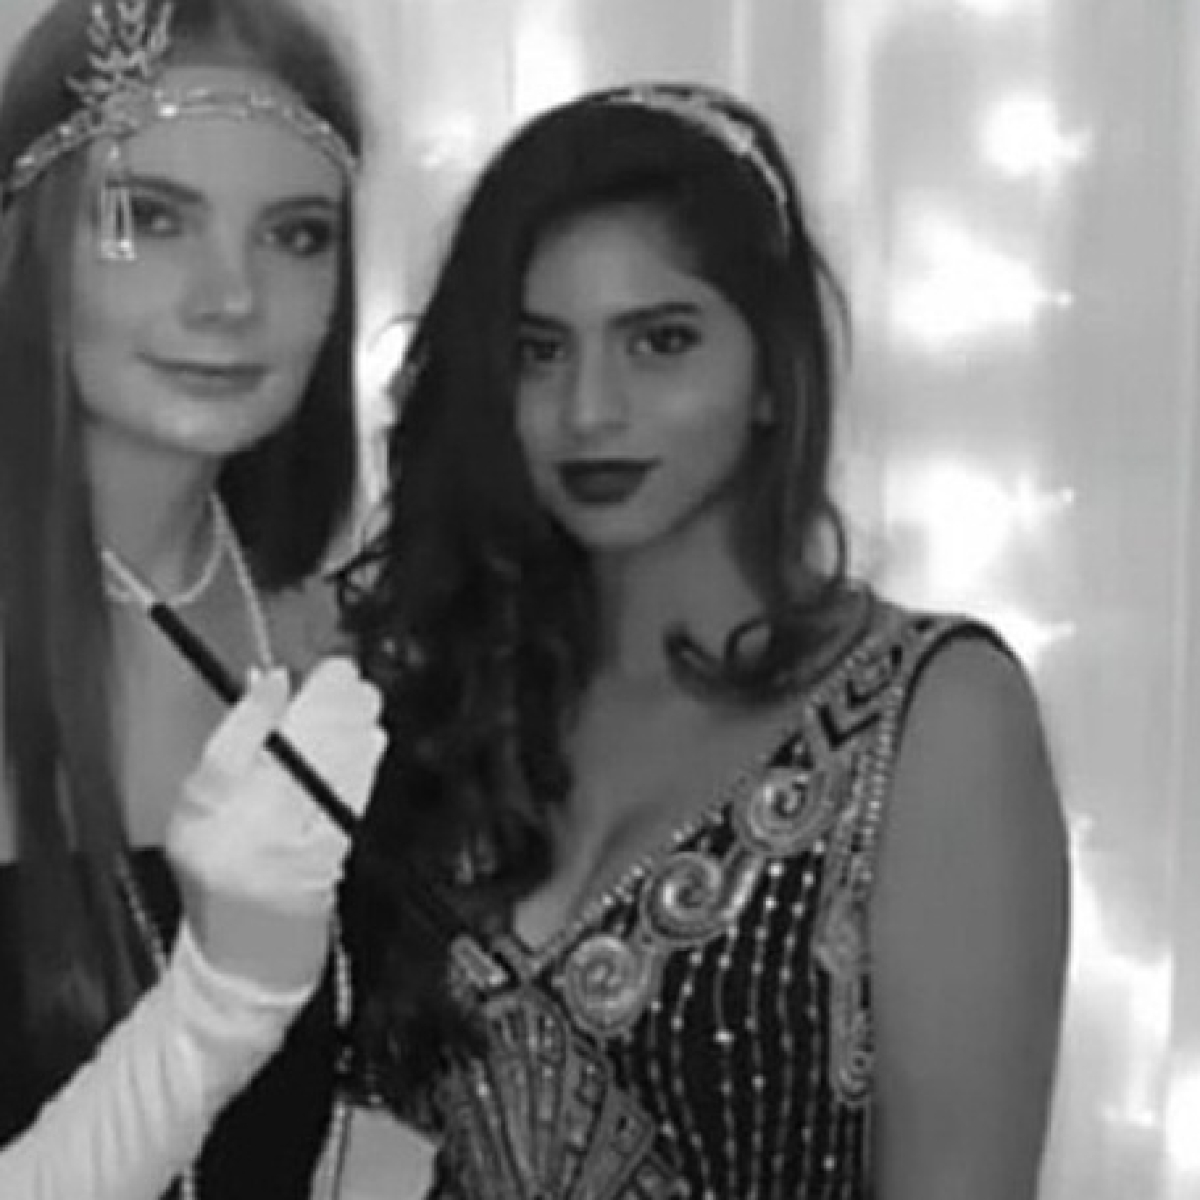 Naughty or nice? Suhana Khan slays at a dress up party with friends